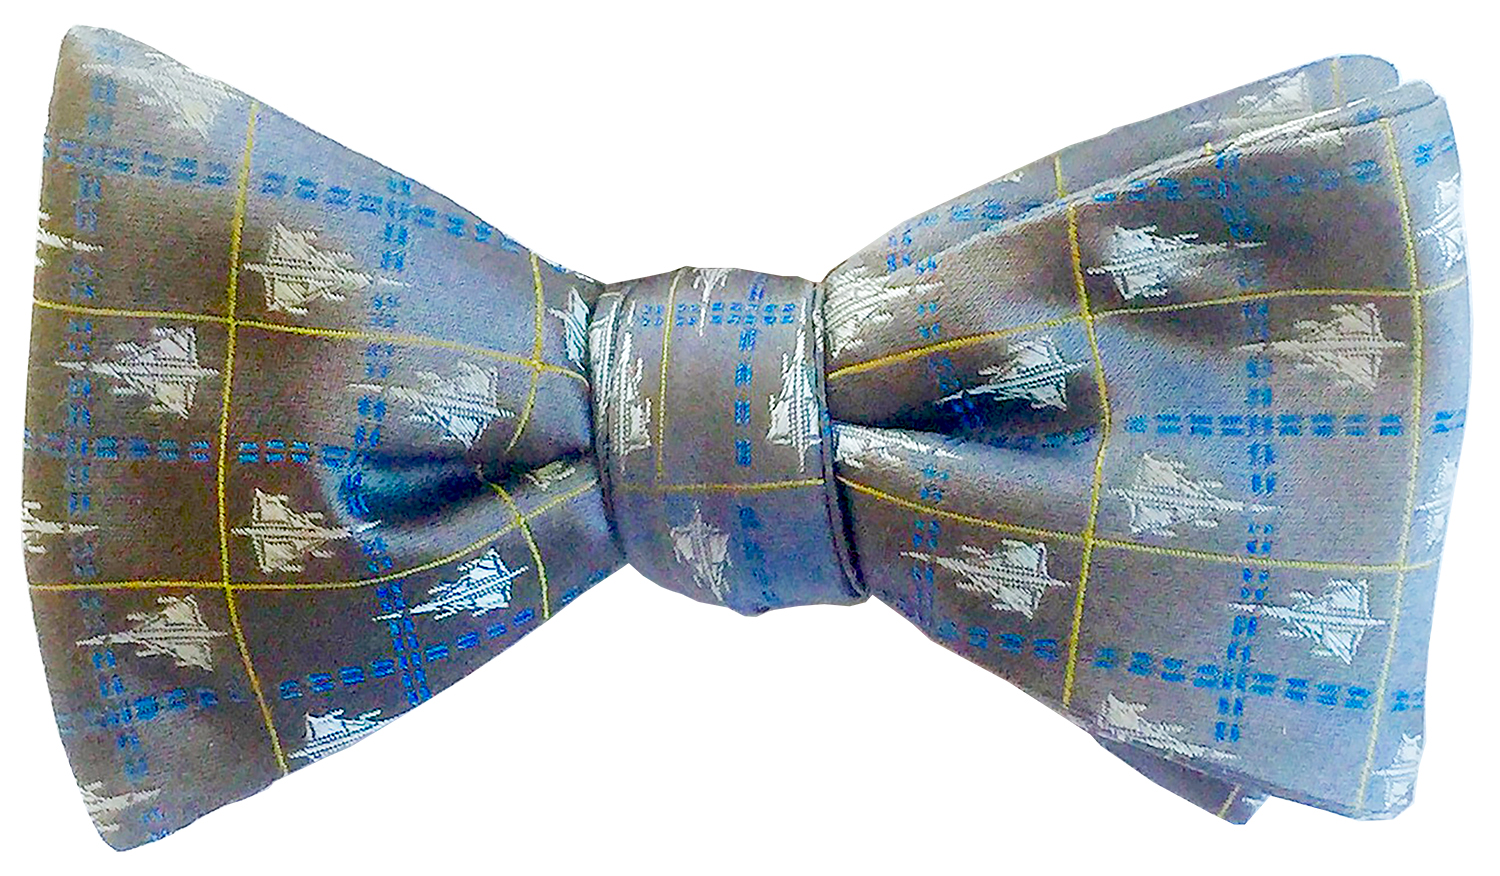 doppeldecker design designer aviation aircraft silk bow tie bowtie b58 b-58 hustler